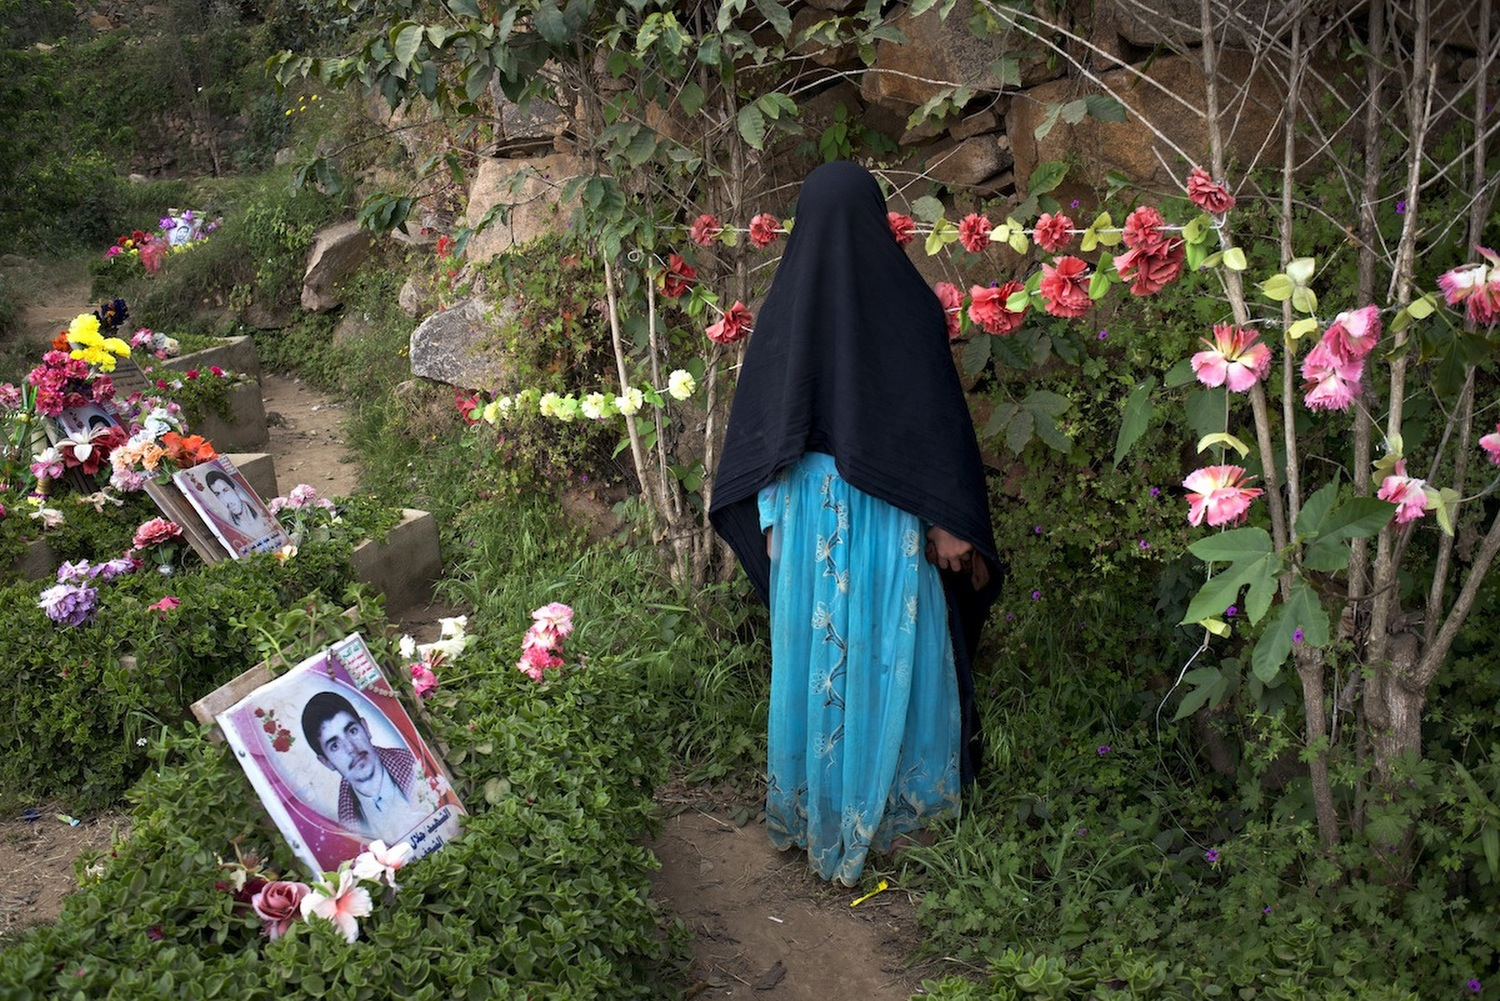 A young girl visits the martyrs cemetery, which is dedicated to the men who died protecting Hussein Al Houthi.